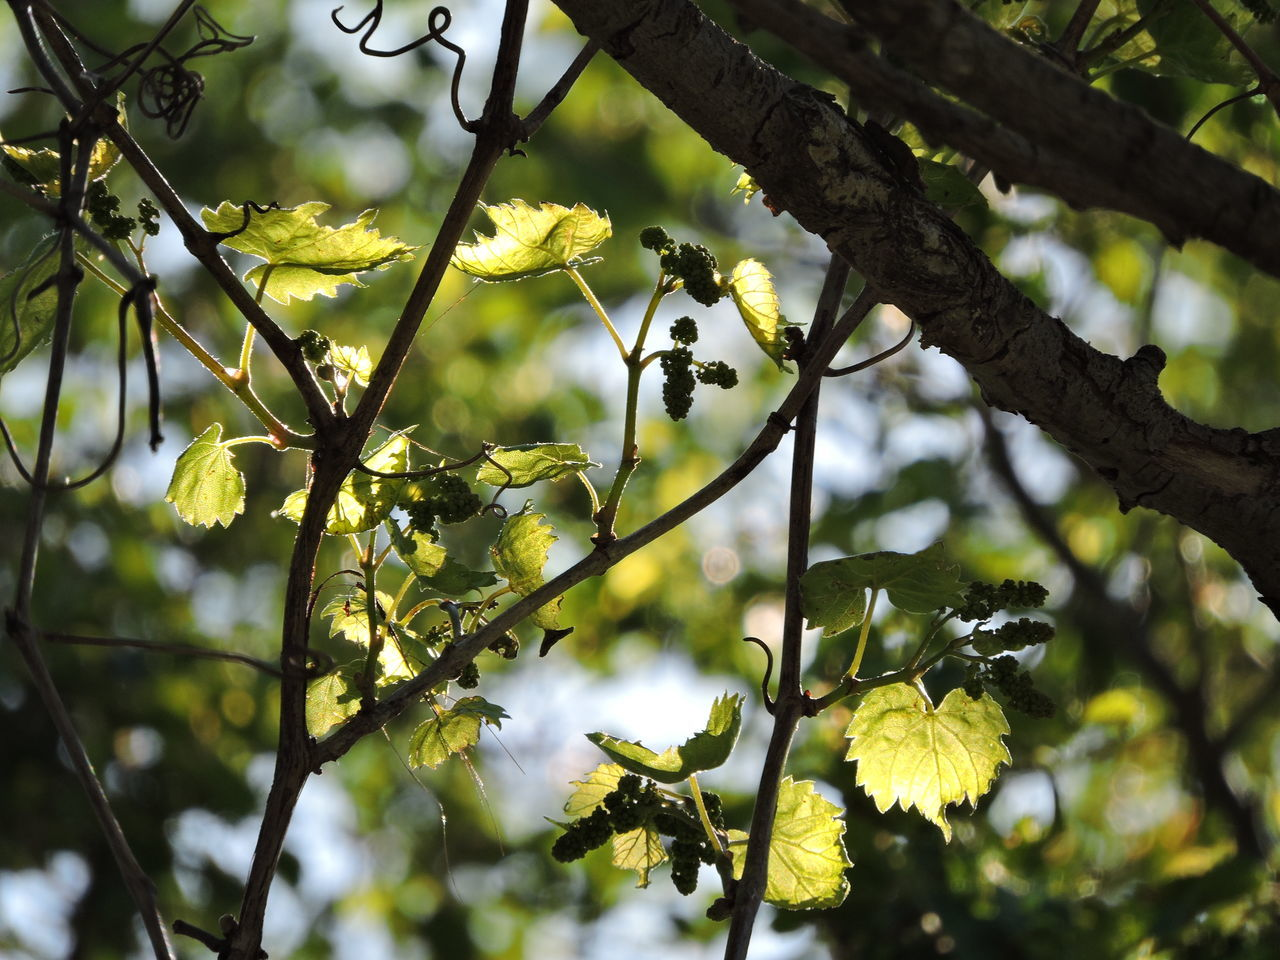 Beauty In Nature Branch Close-up Day Flower Fragility Freshness Growth Leaf Low Angle View Nature No People Outdoors Sky Sunlit Tree Wild Grape Vine Yellow